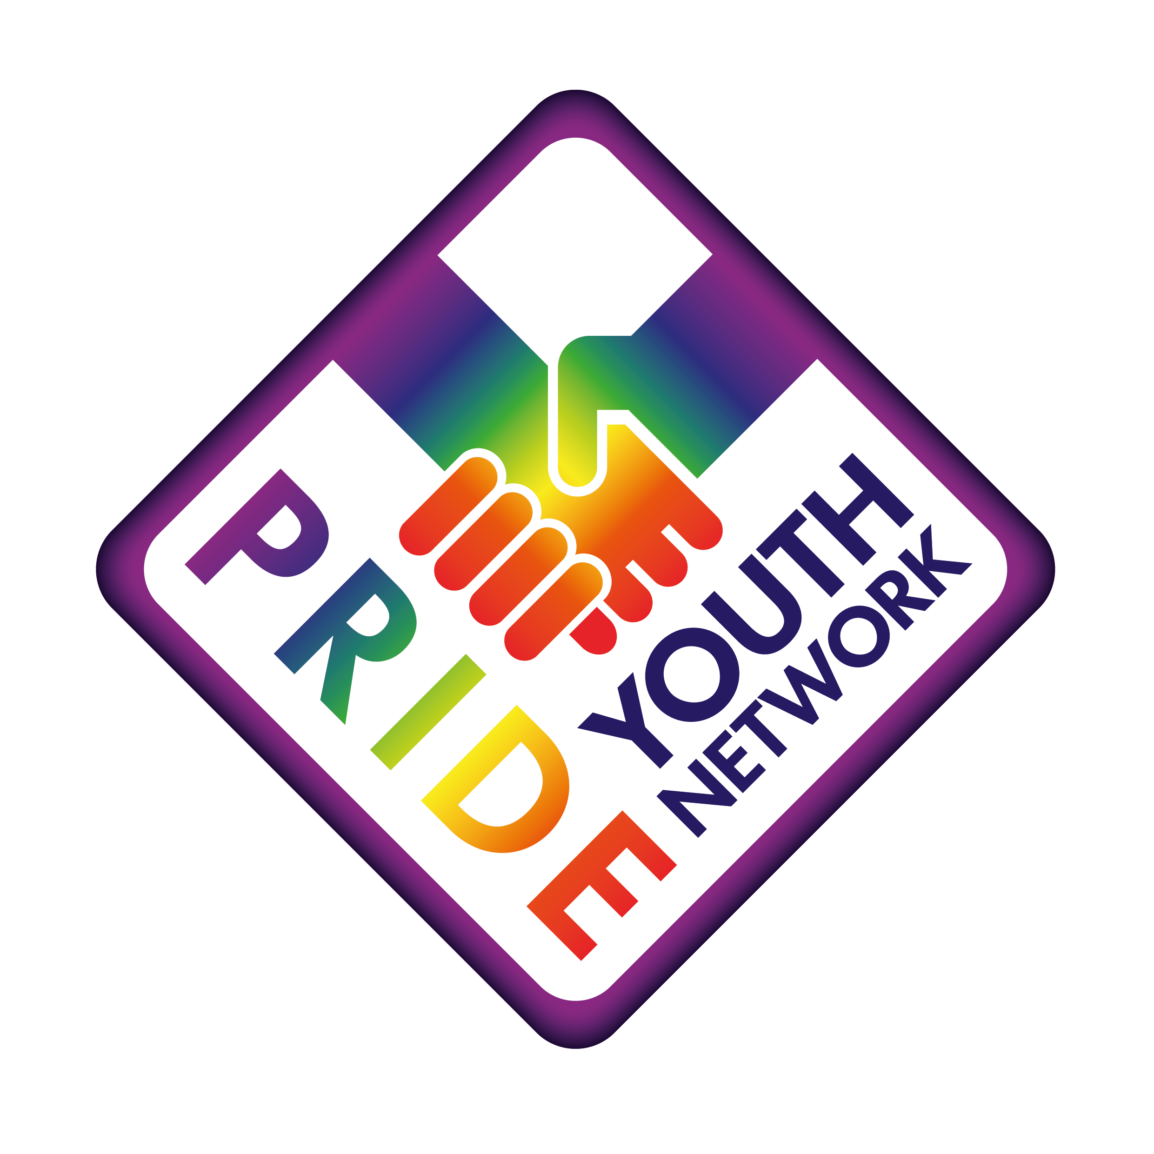 PRIDE Youth Network